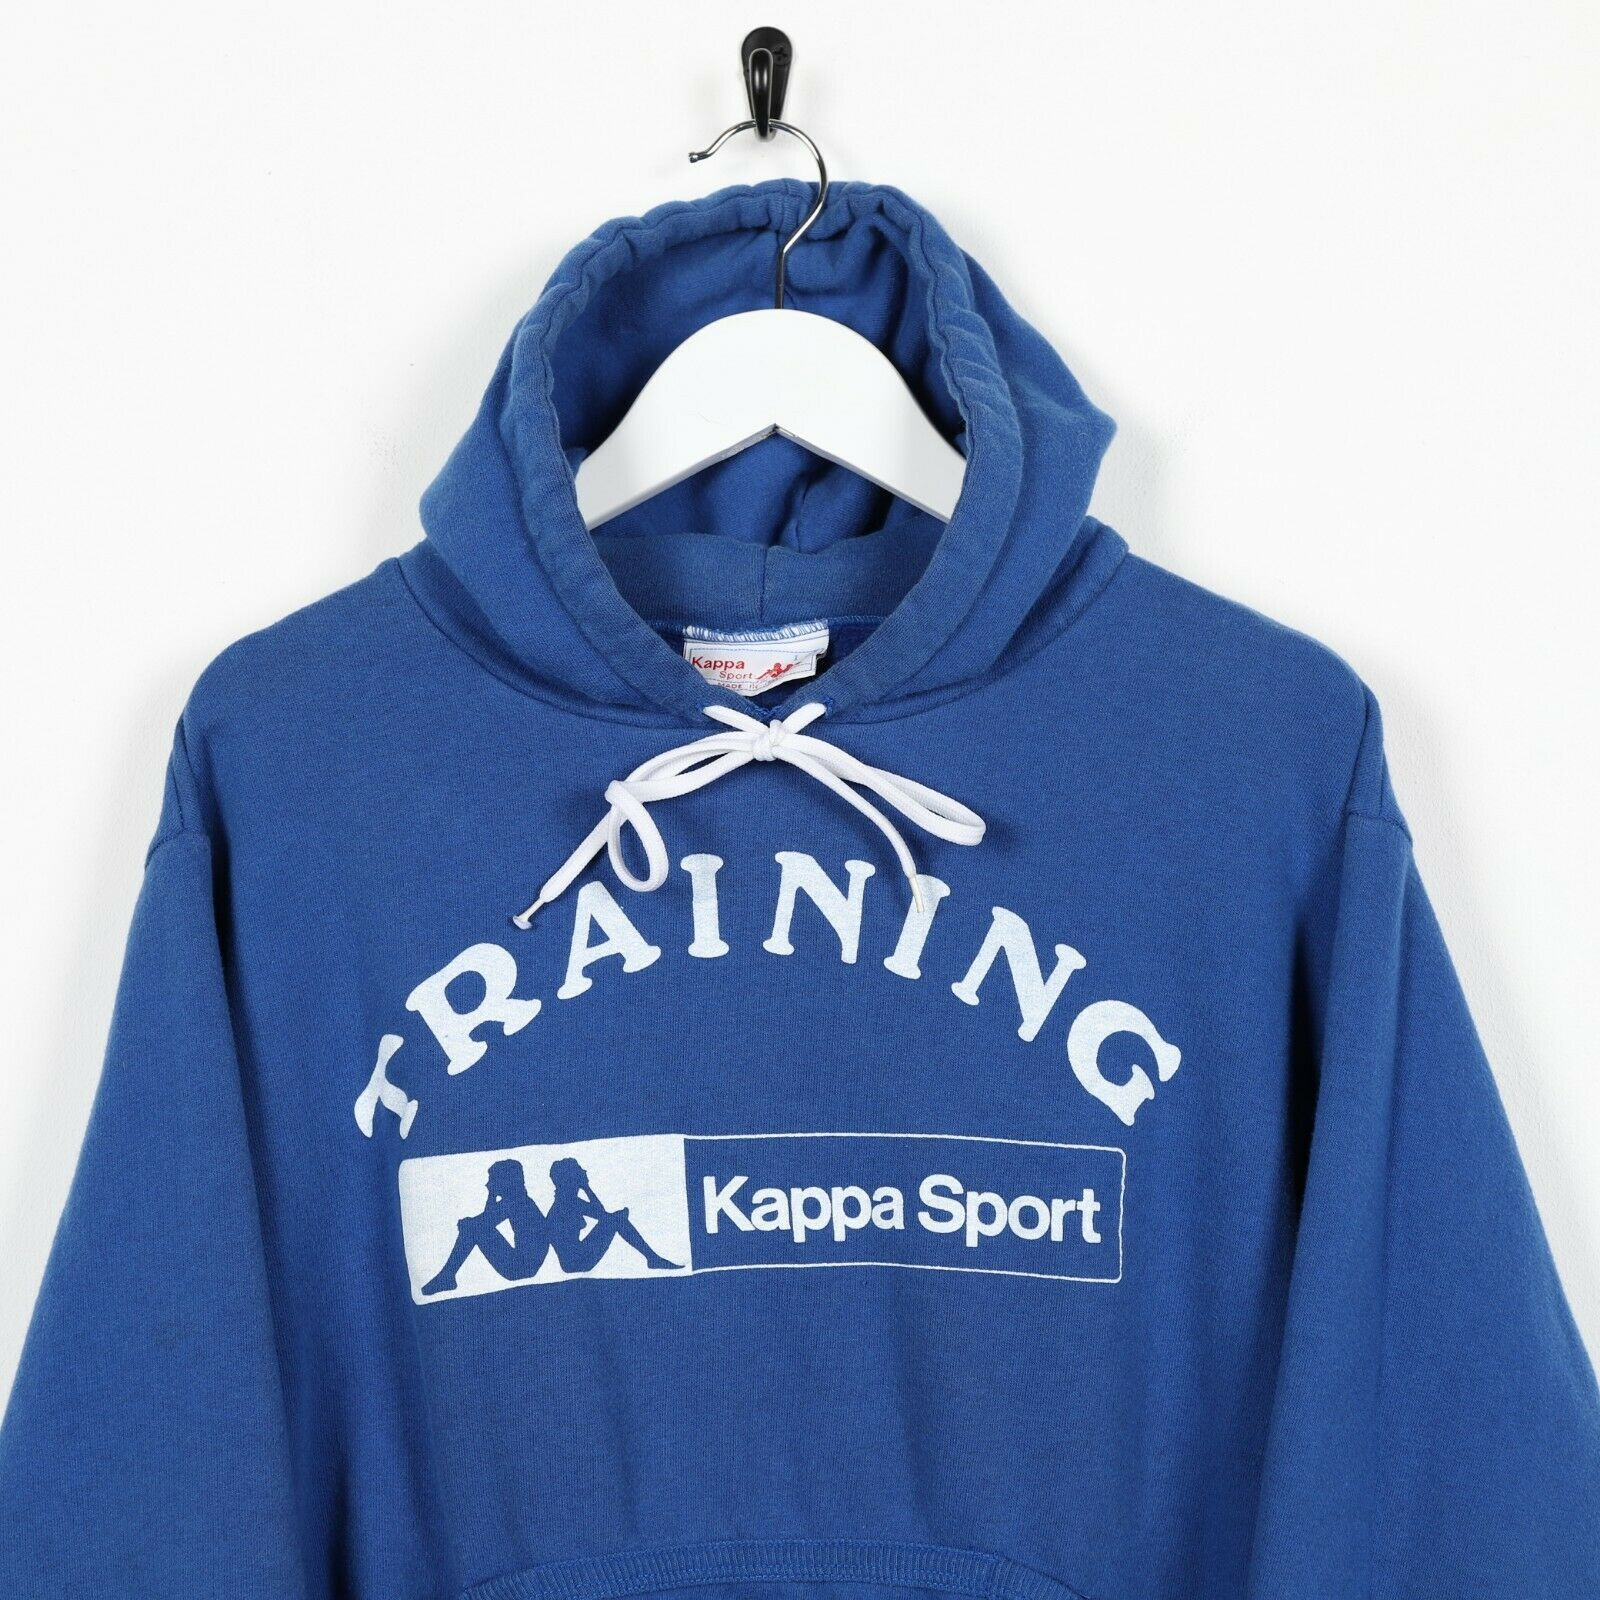 Vintage Women's 90s KAPPA Sport Big Logo Hoodie Sweatshirt Blue Medium M